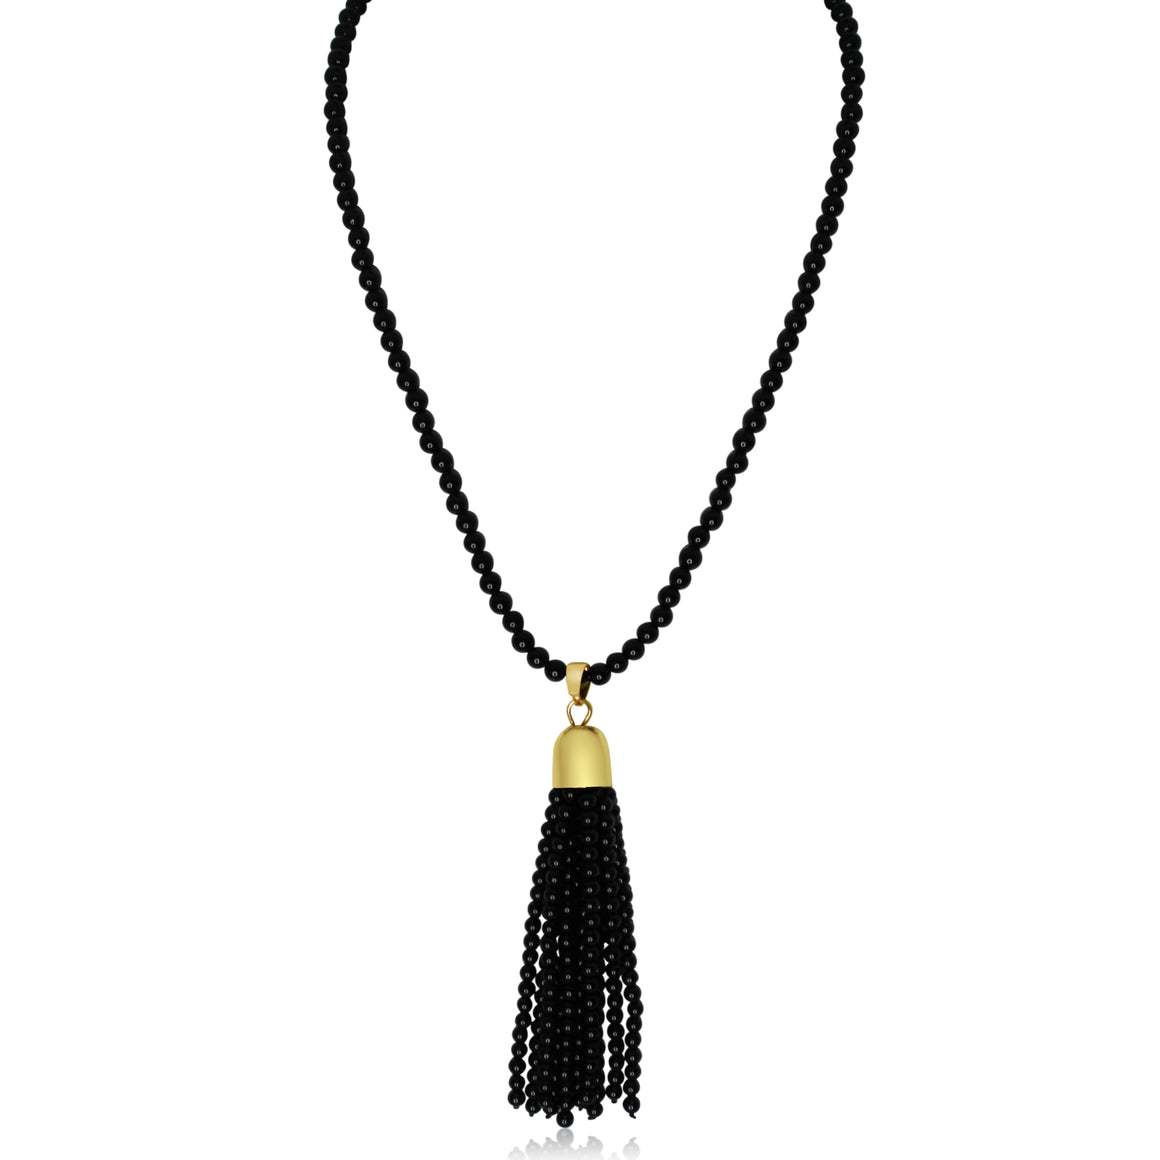 Tassel - Black Agate - choose magnet colour